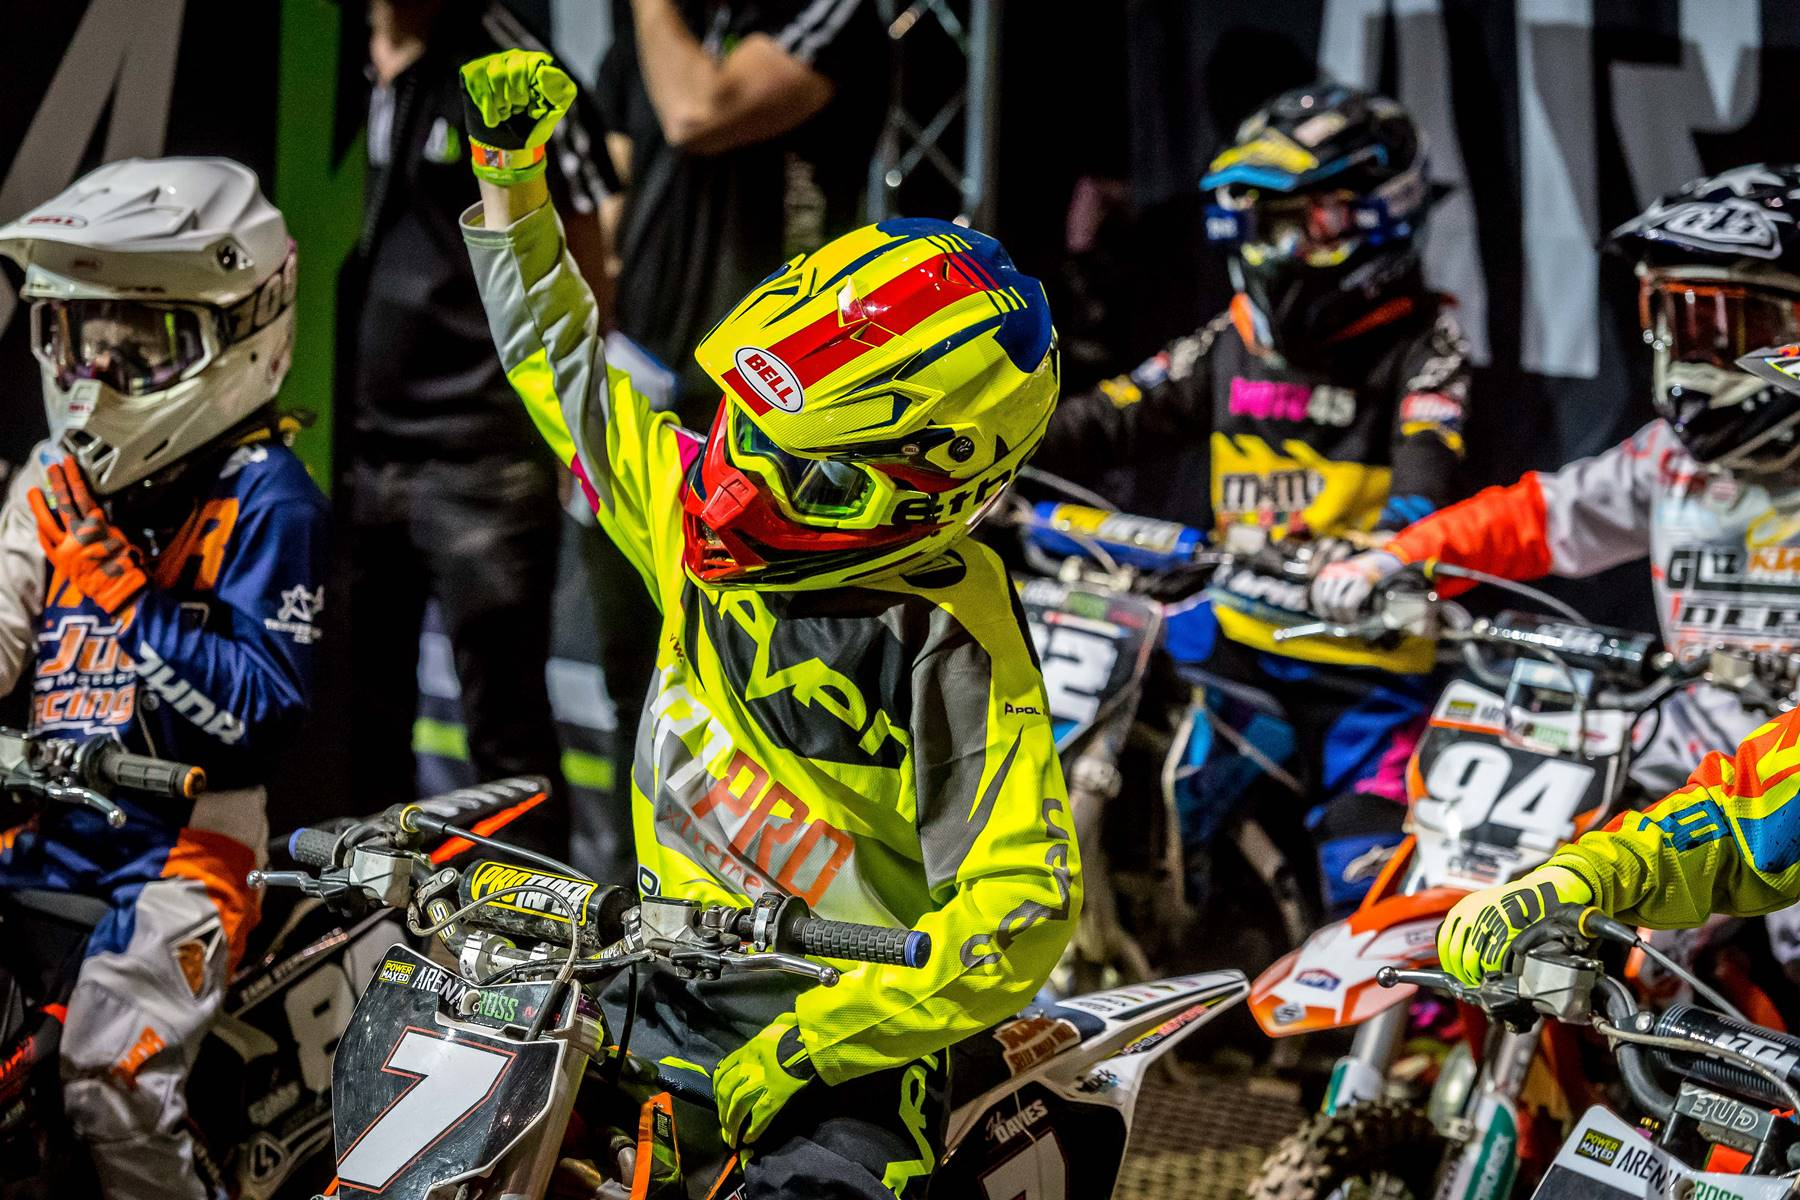 YOUTHS AT THE READY FOR ARENACROSS